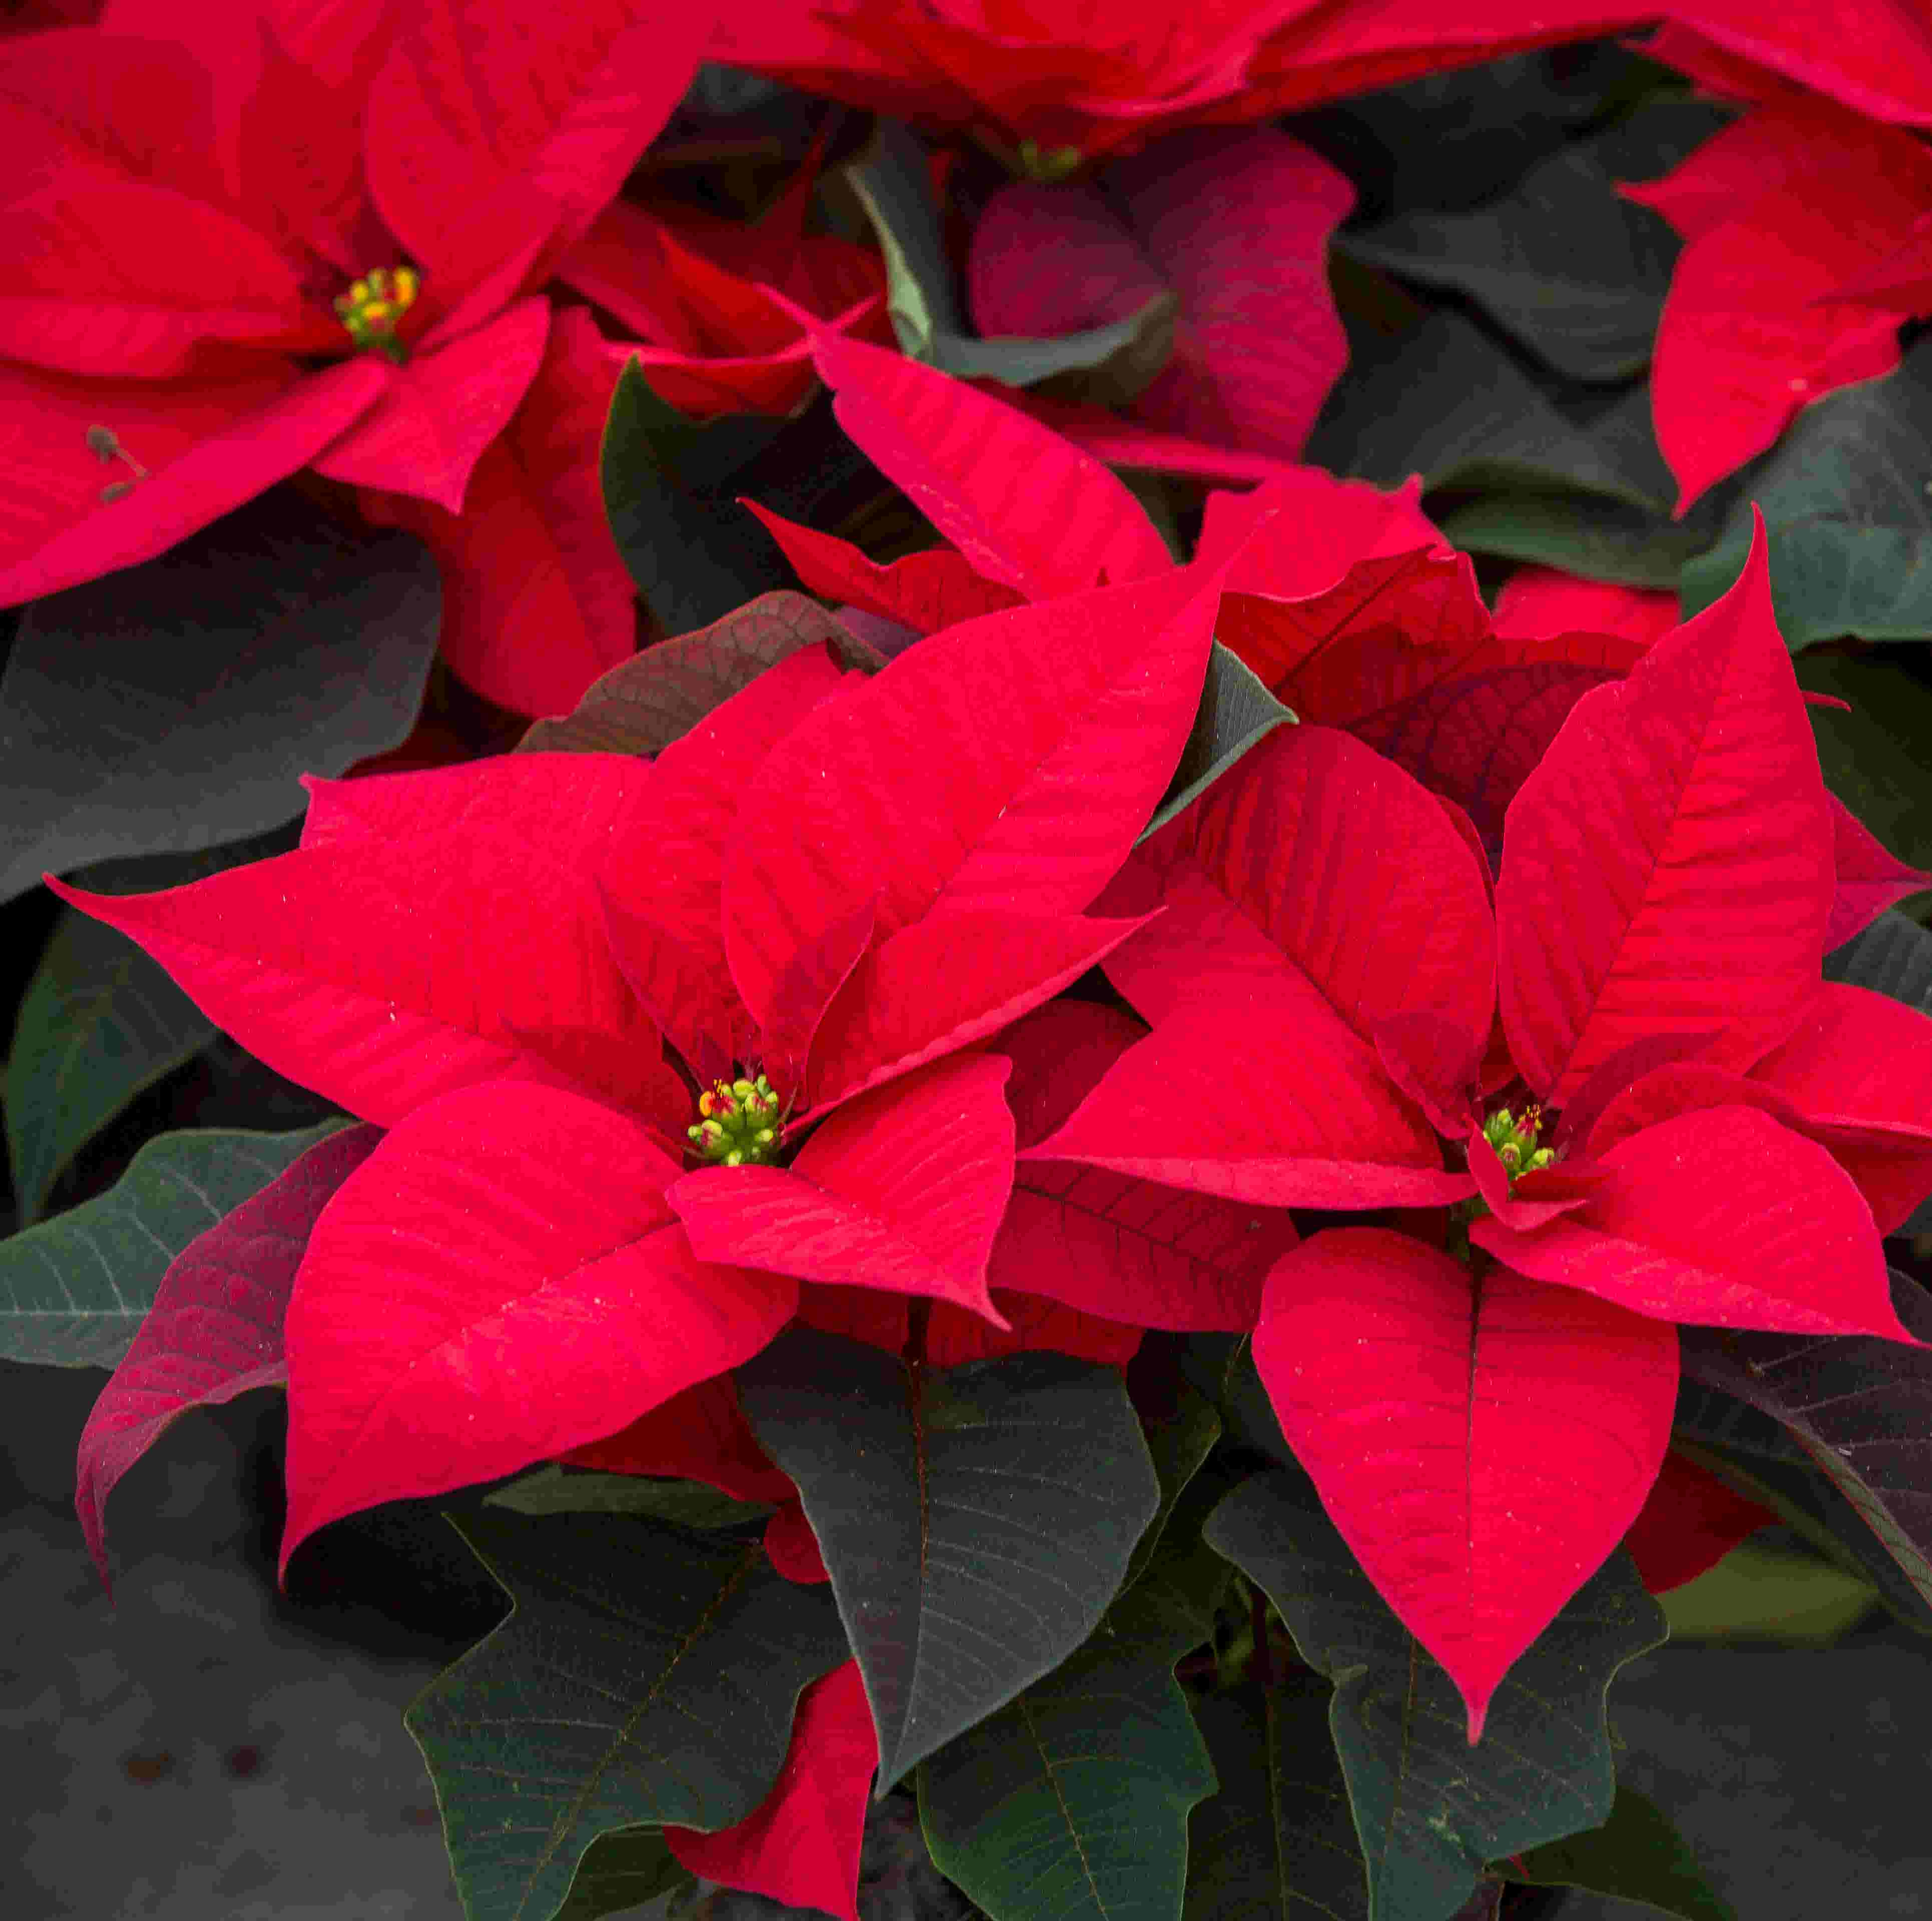 Poinsettias Are A Great Idea For Christmas Decorations